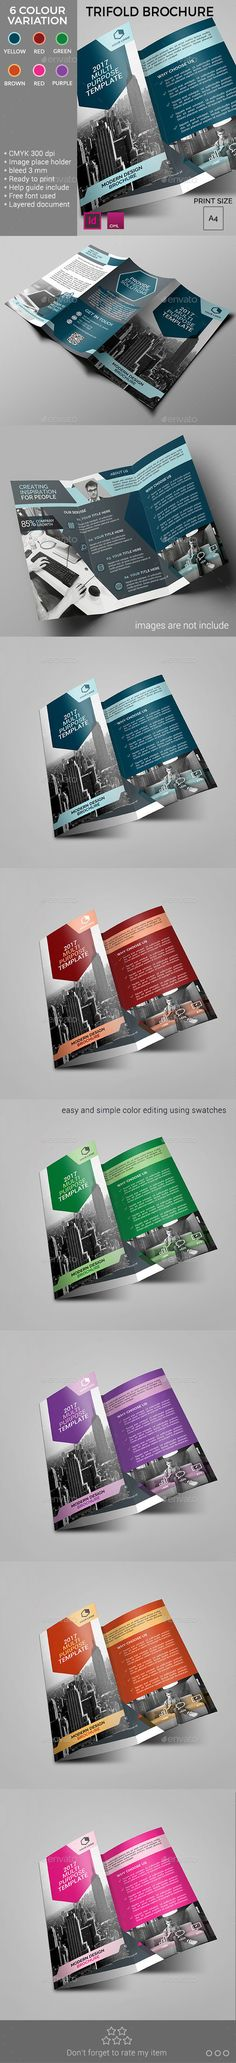 Trifold Brochure Template InDesign INDD